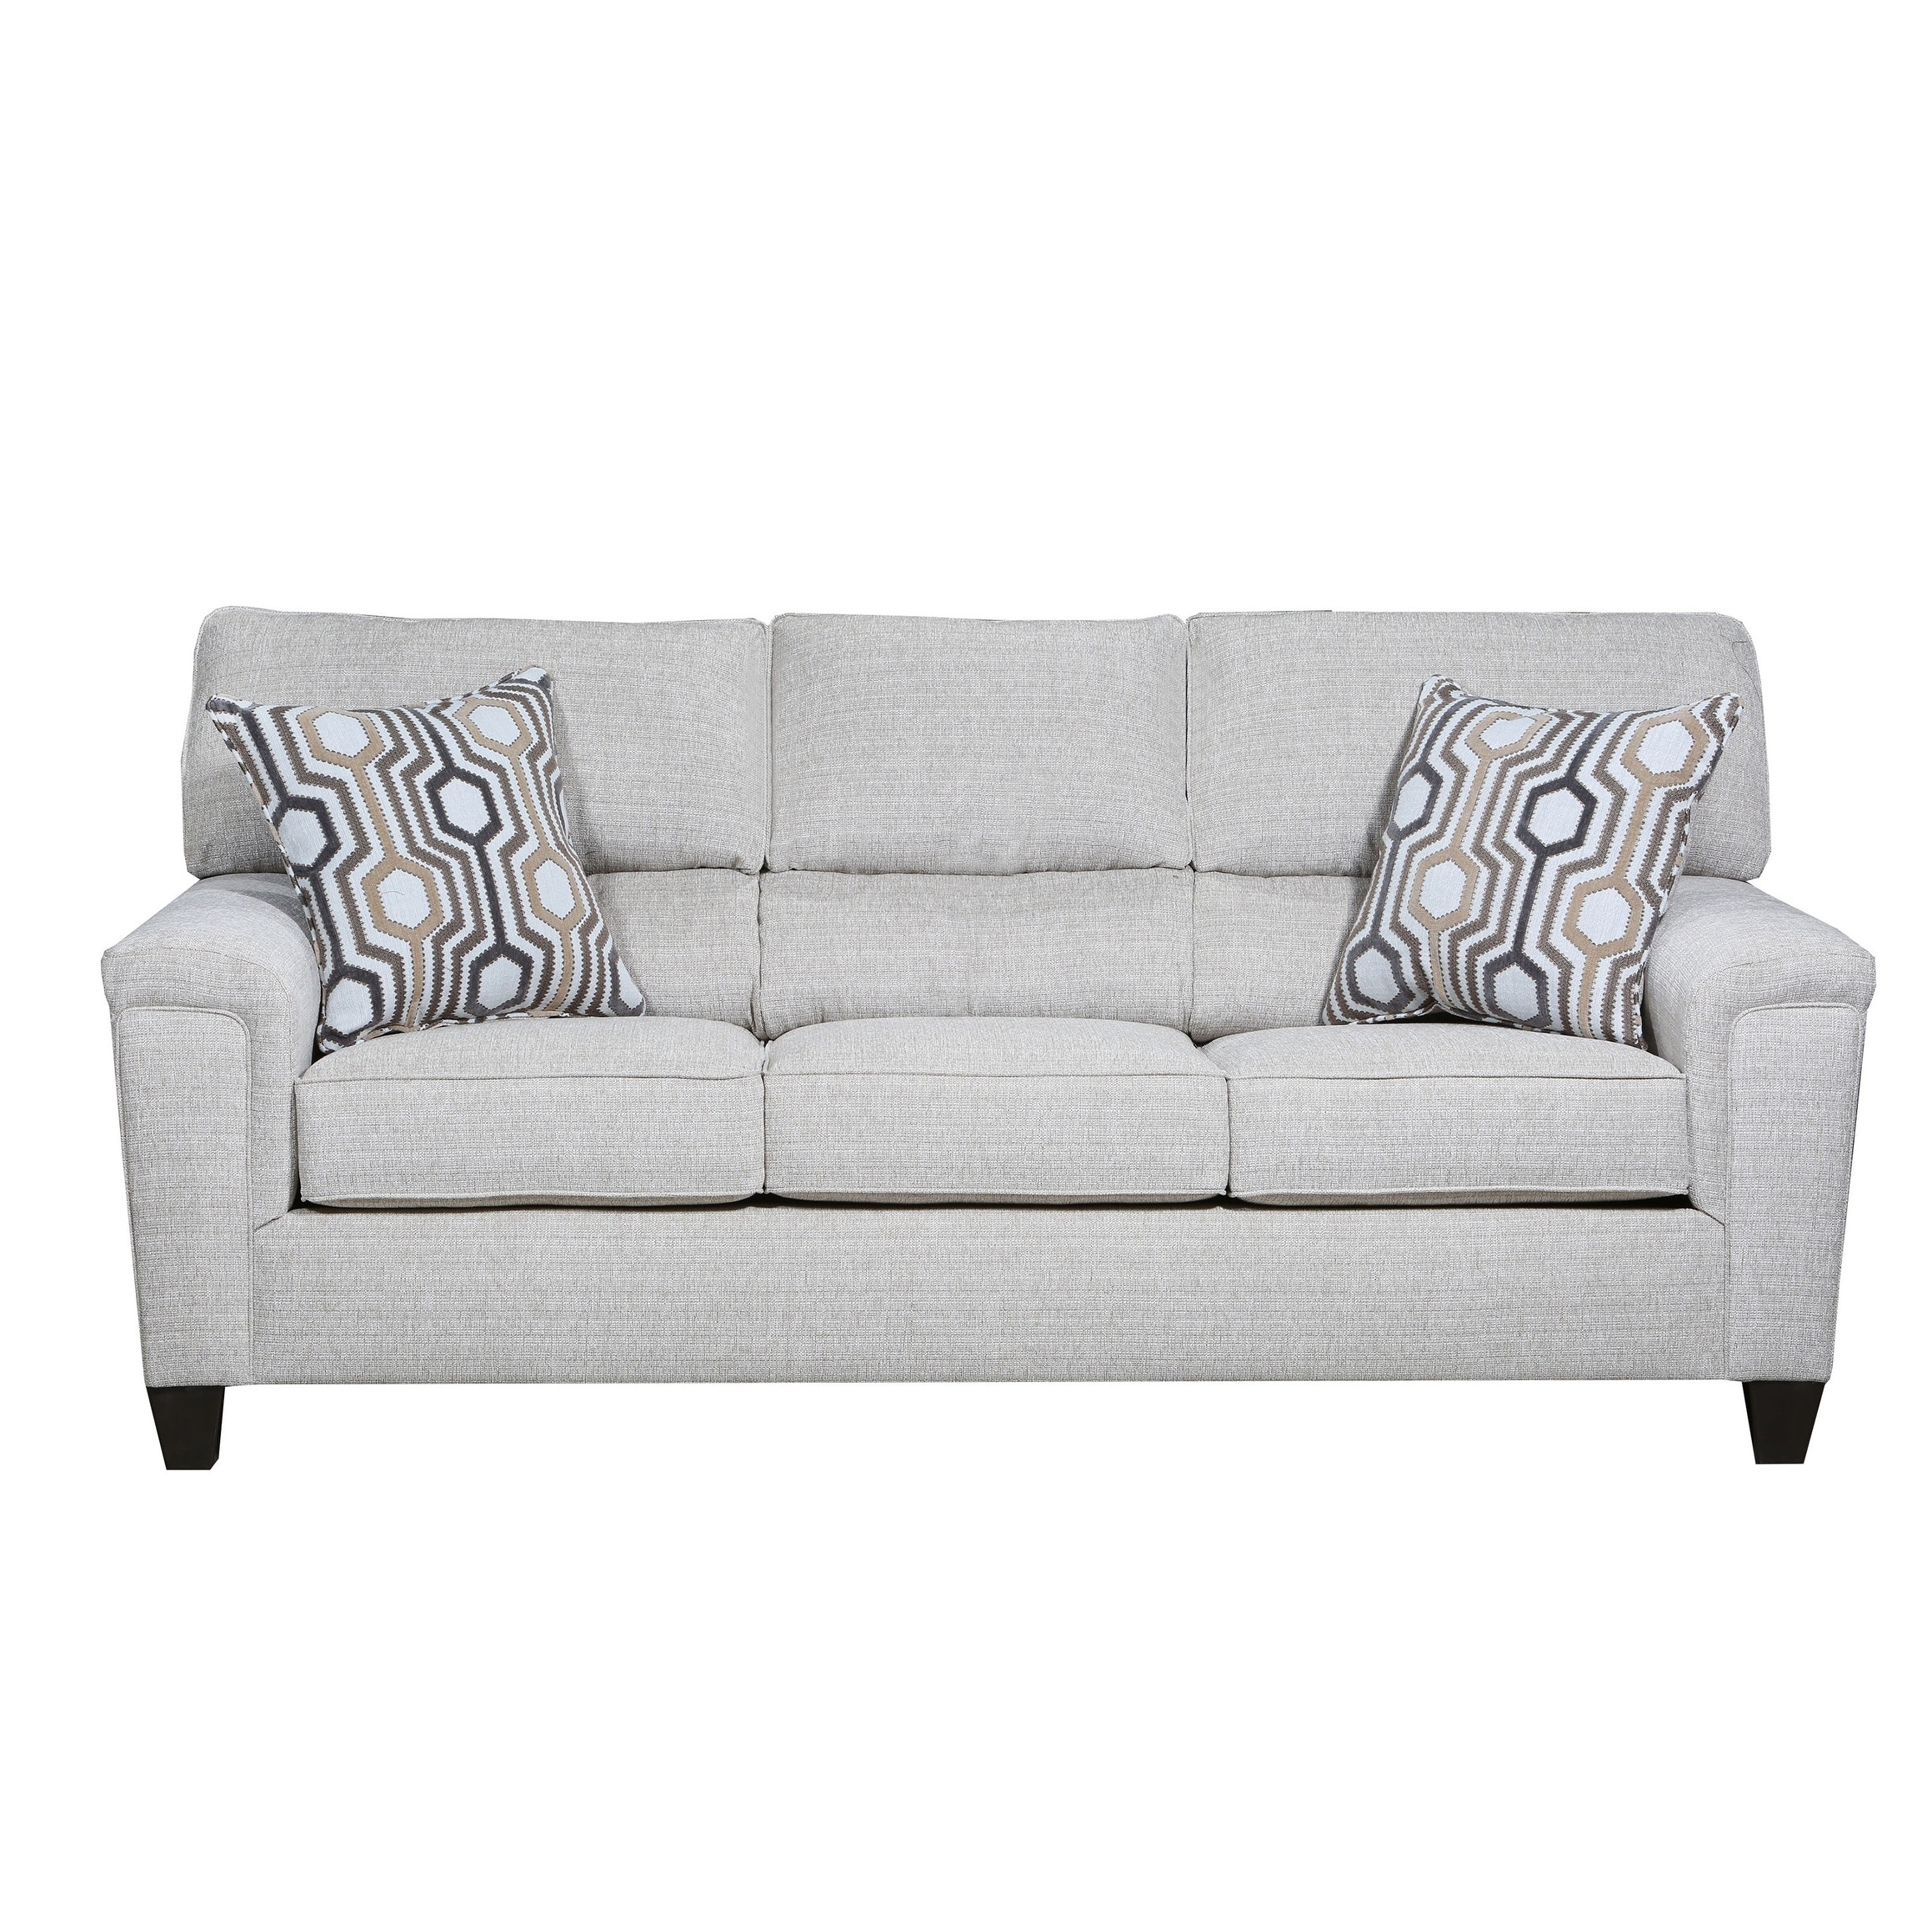 - Shop Dante Natural Queen Sleeper Sofa - On Sale - Overstock - 25627710